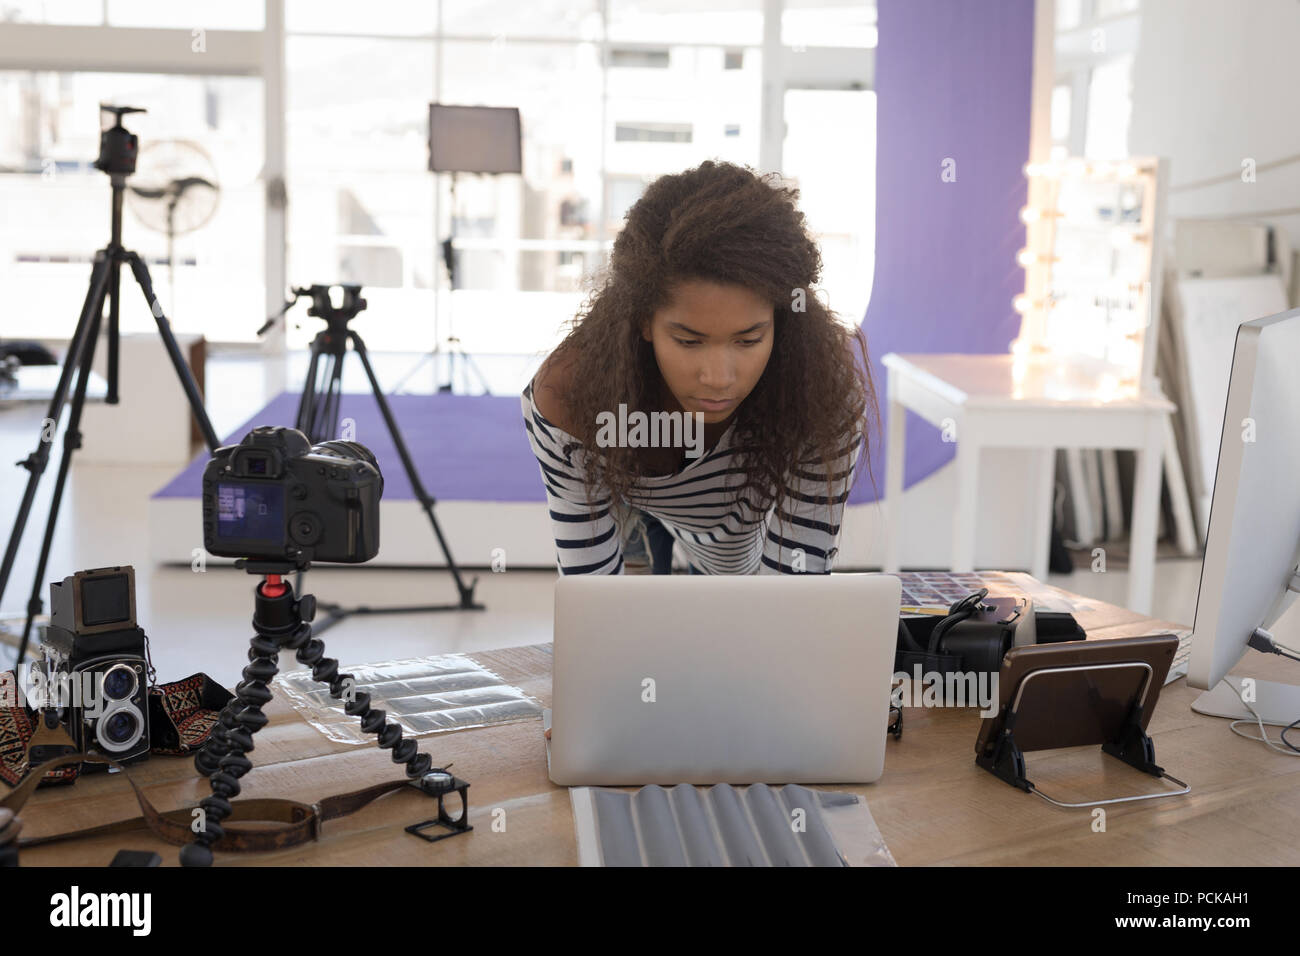 Photographer using laptop at desk - Stock Image